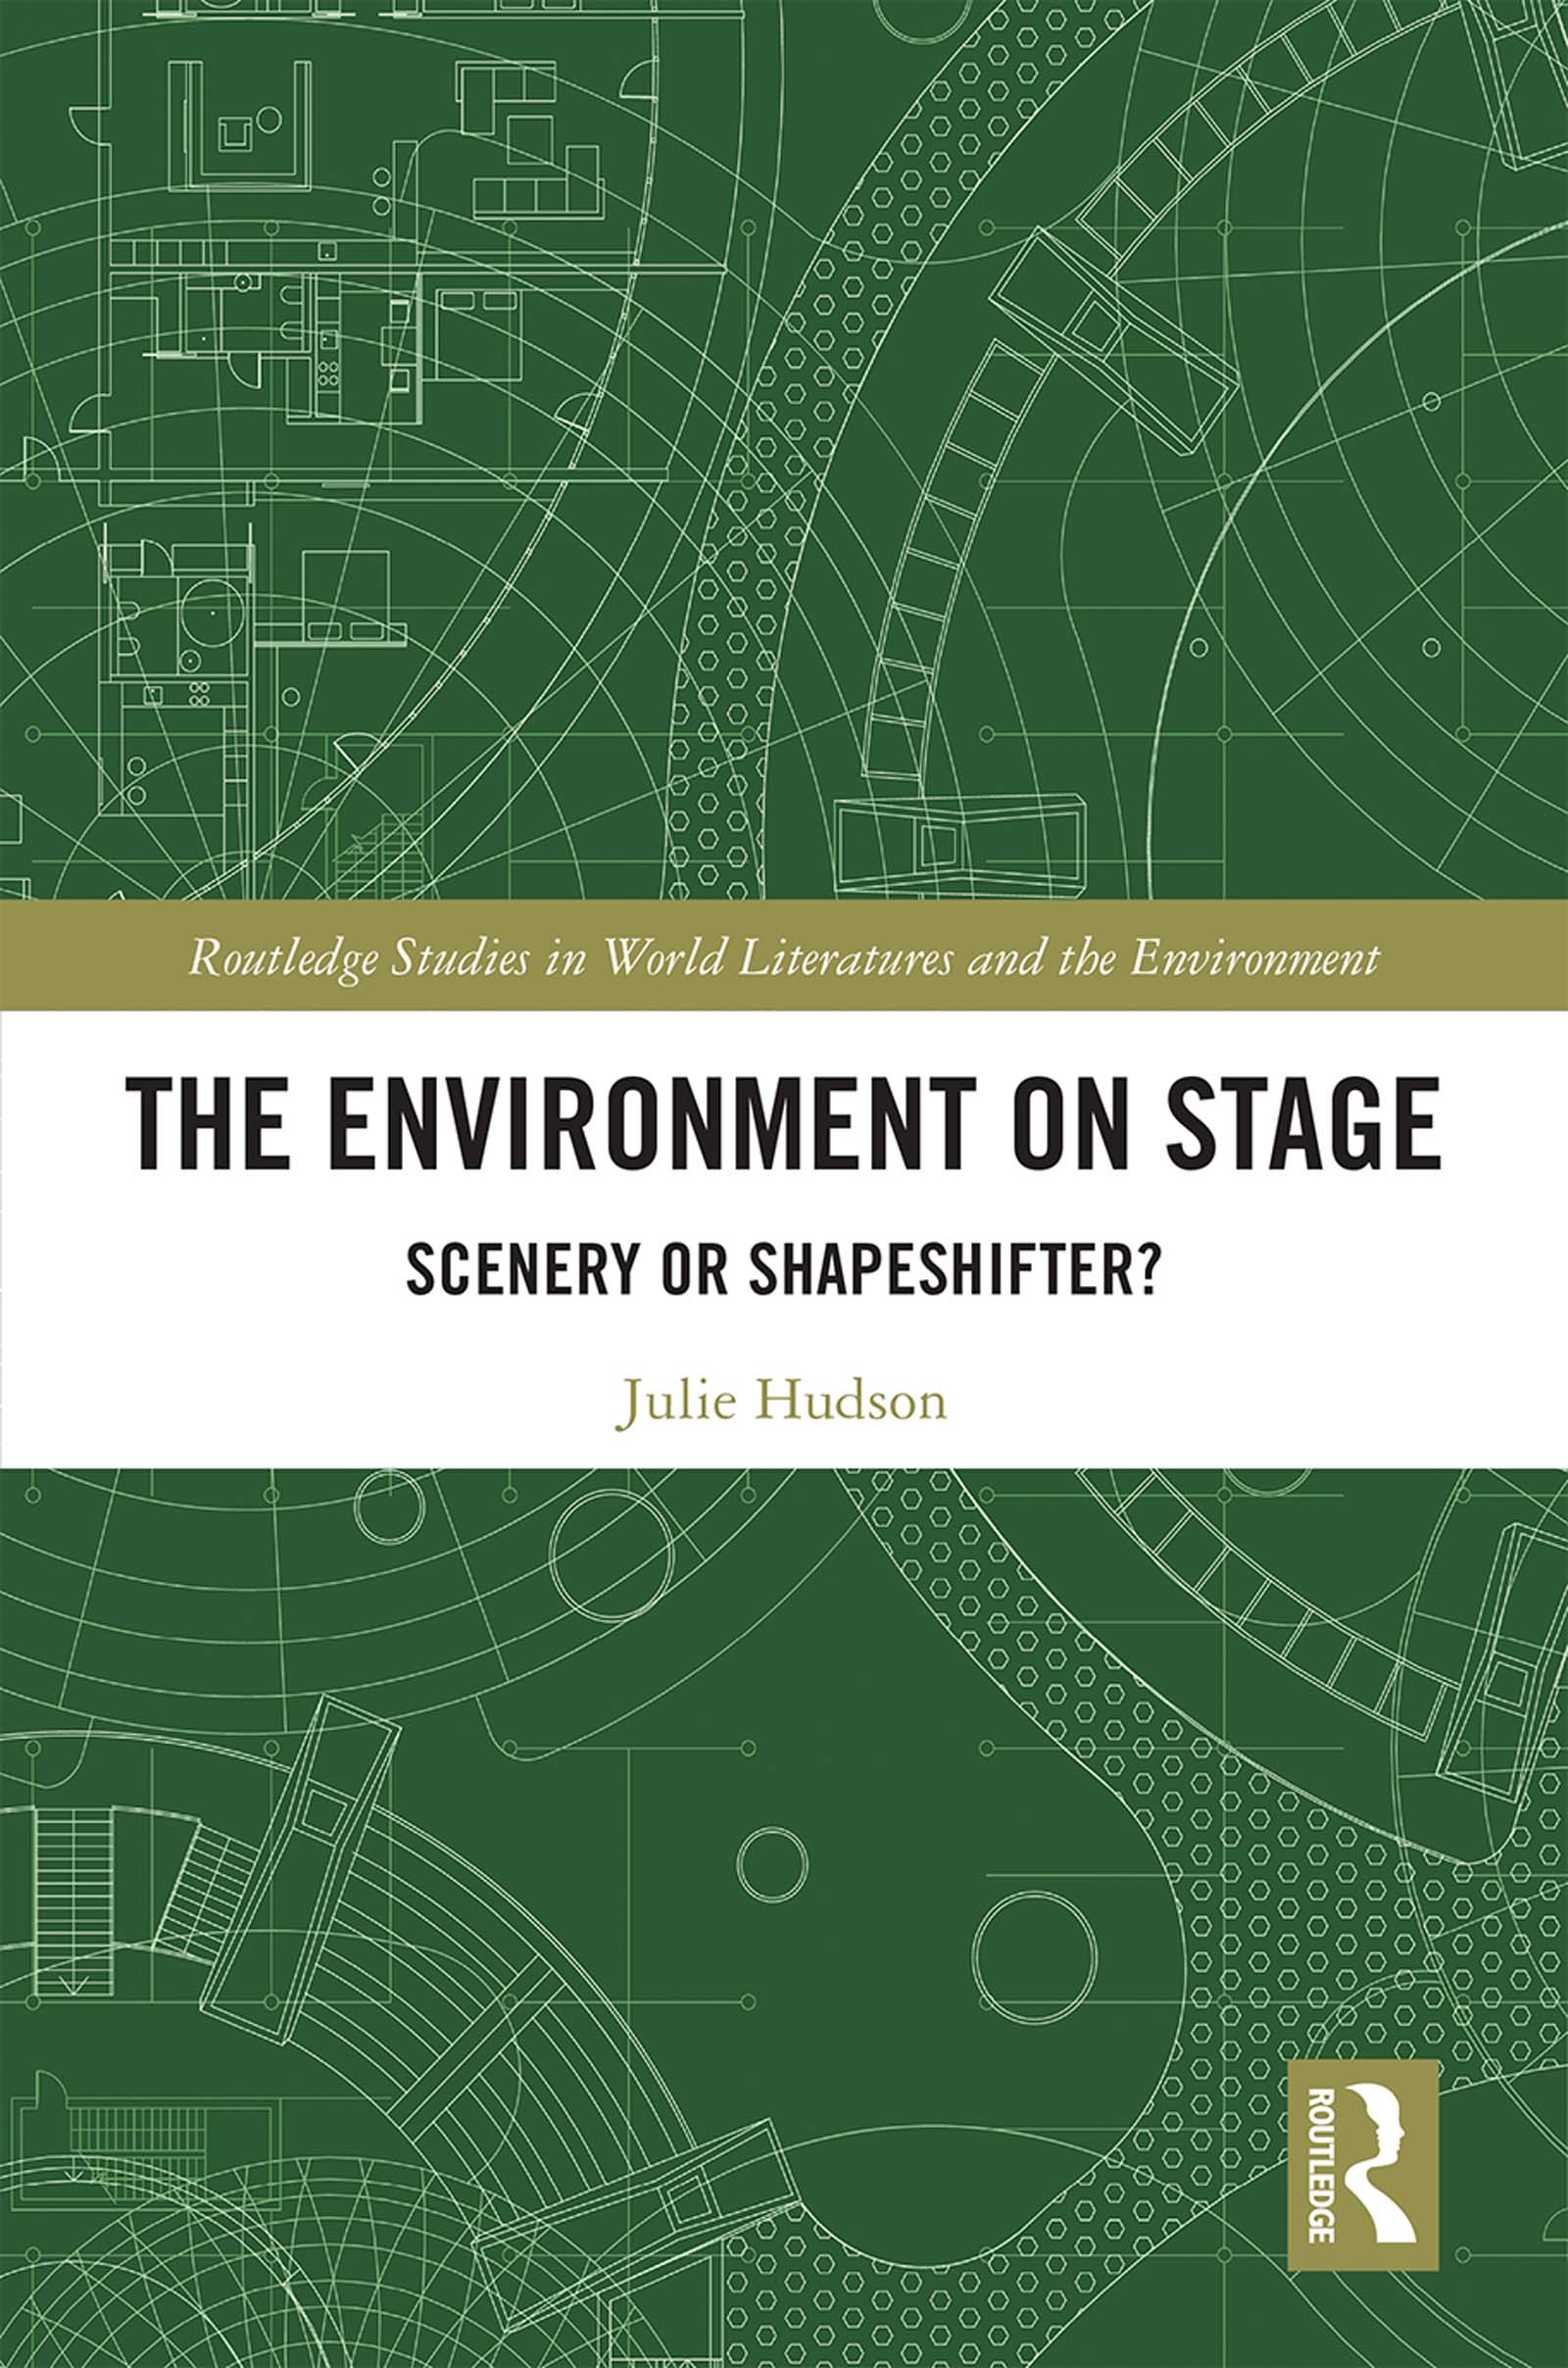 The Environment on Stage: Scenery or Shapeshifter? book cover